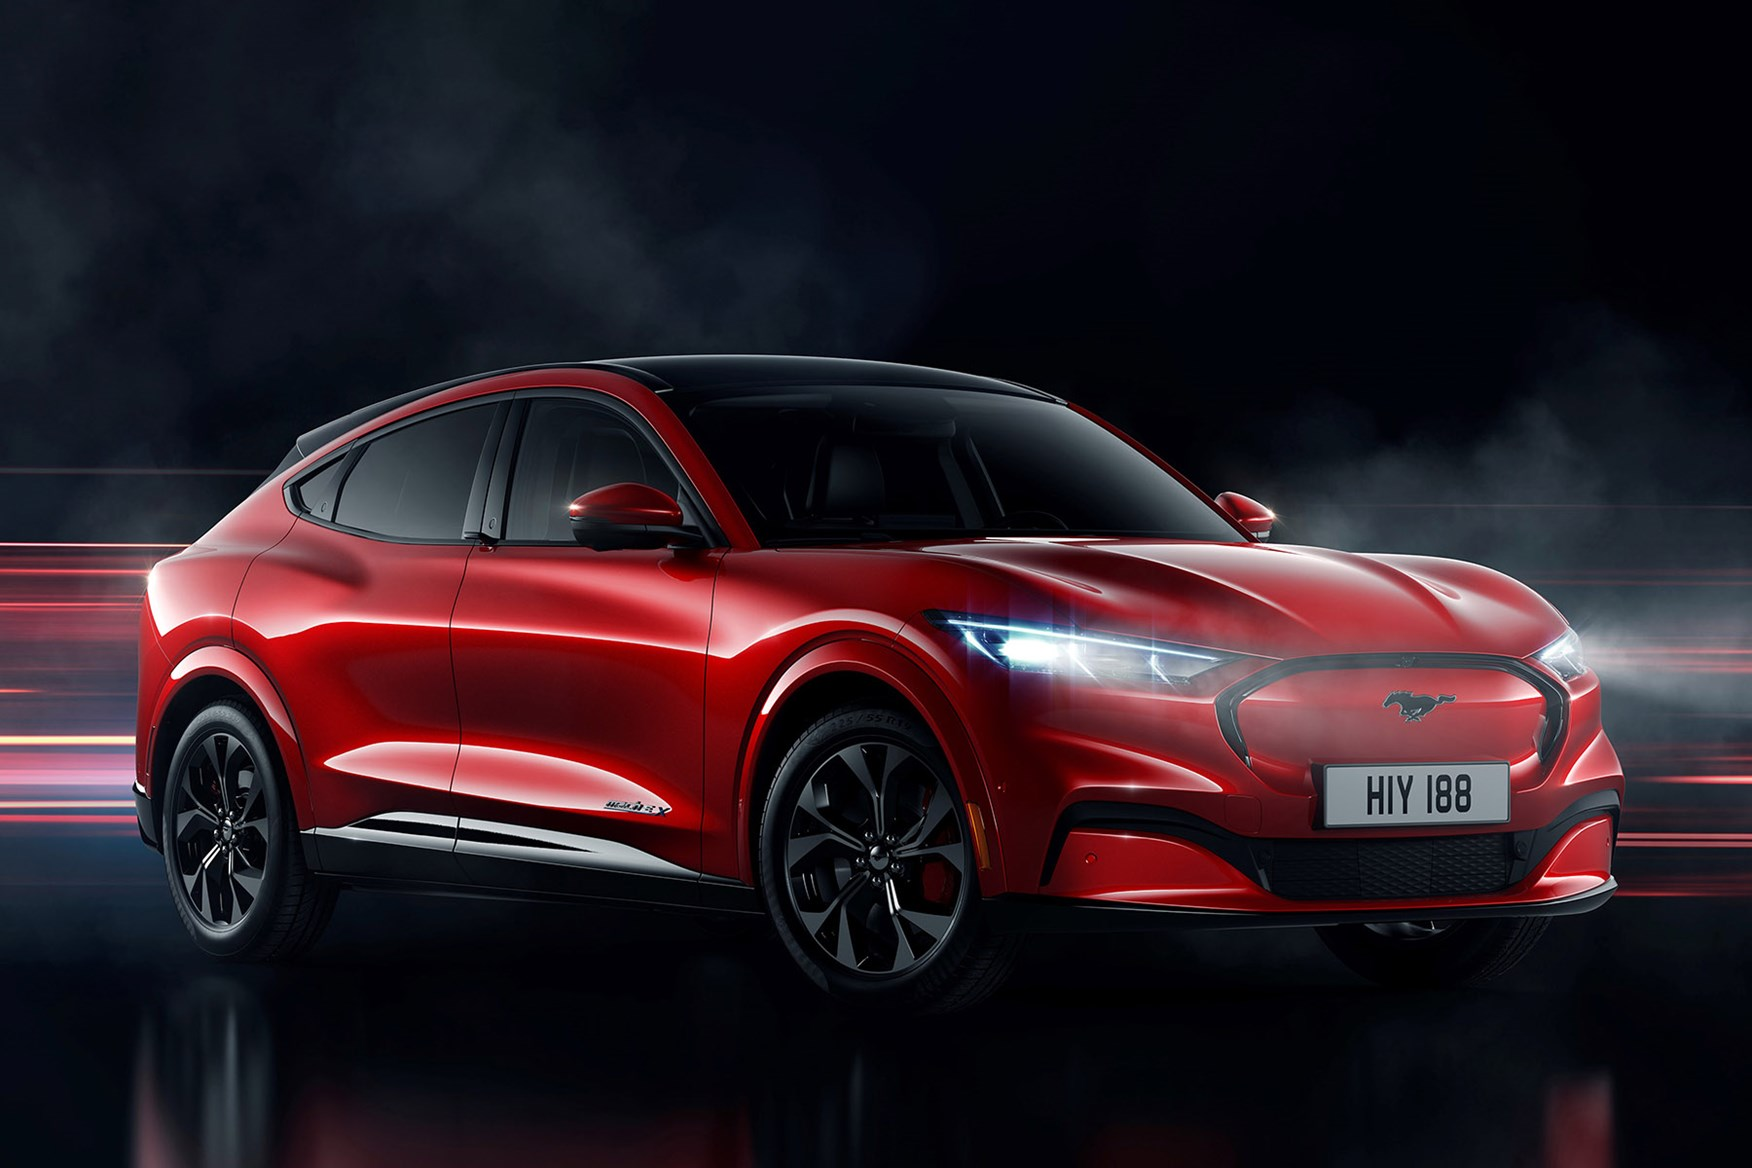 2020 Ford Mustang Electric Suv